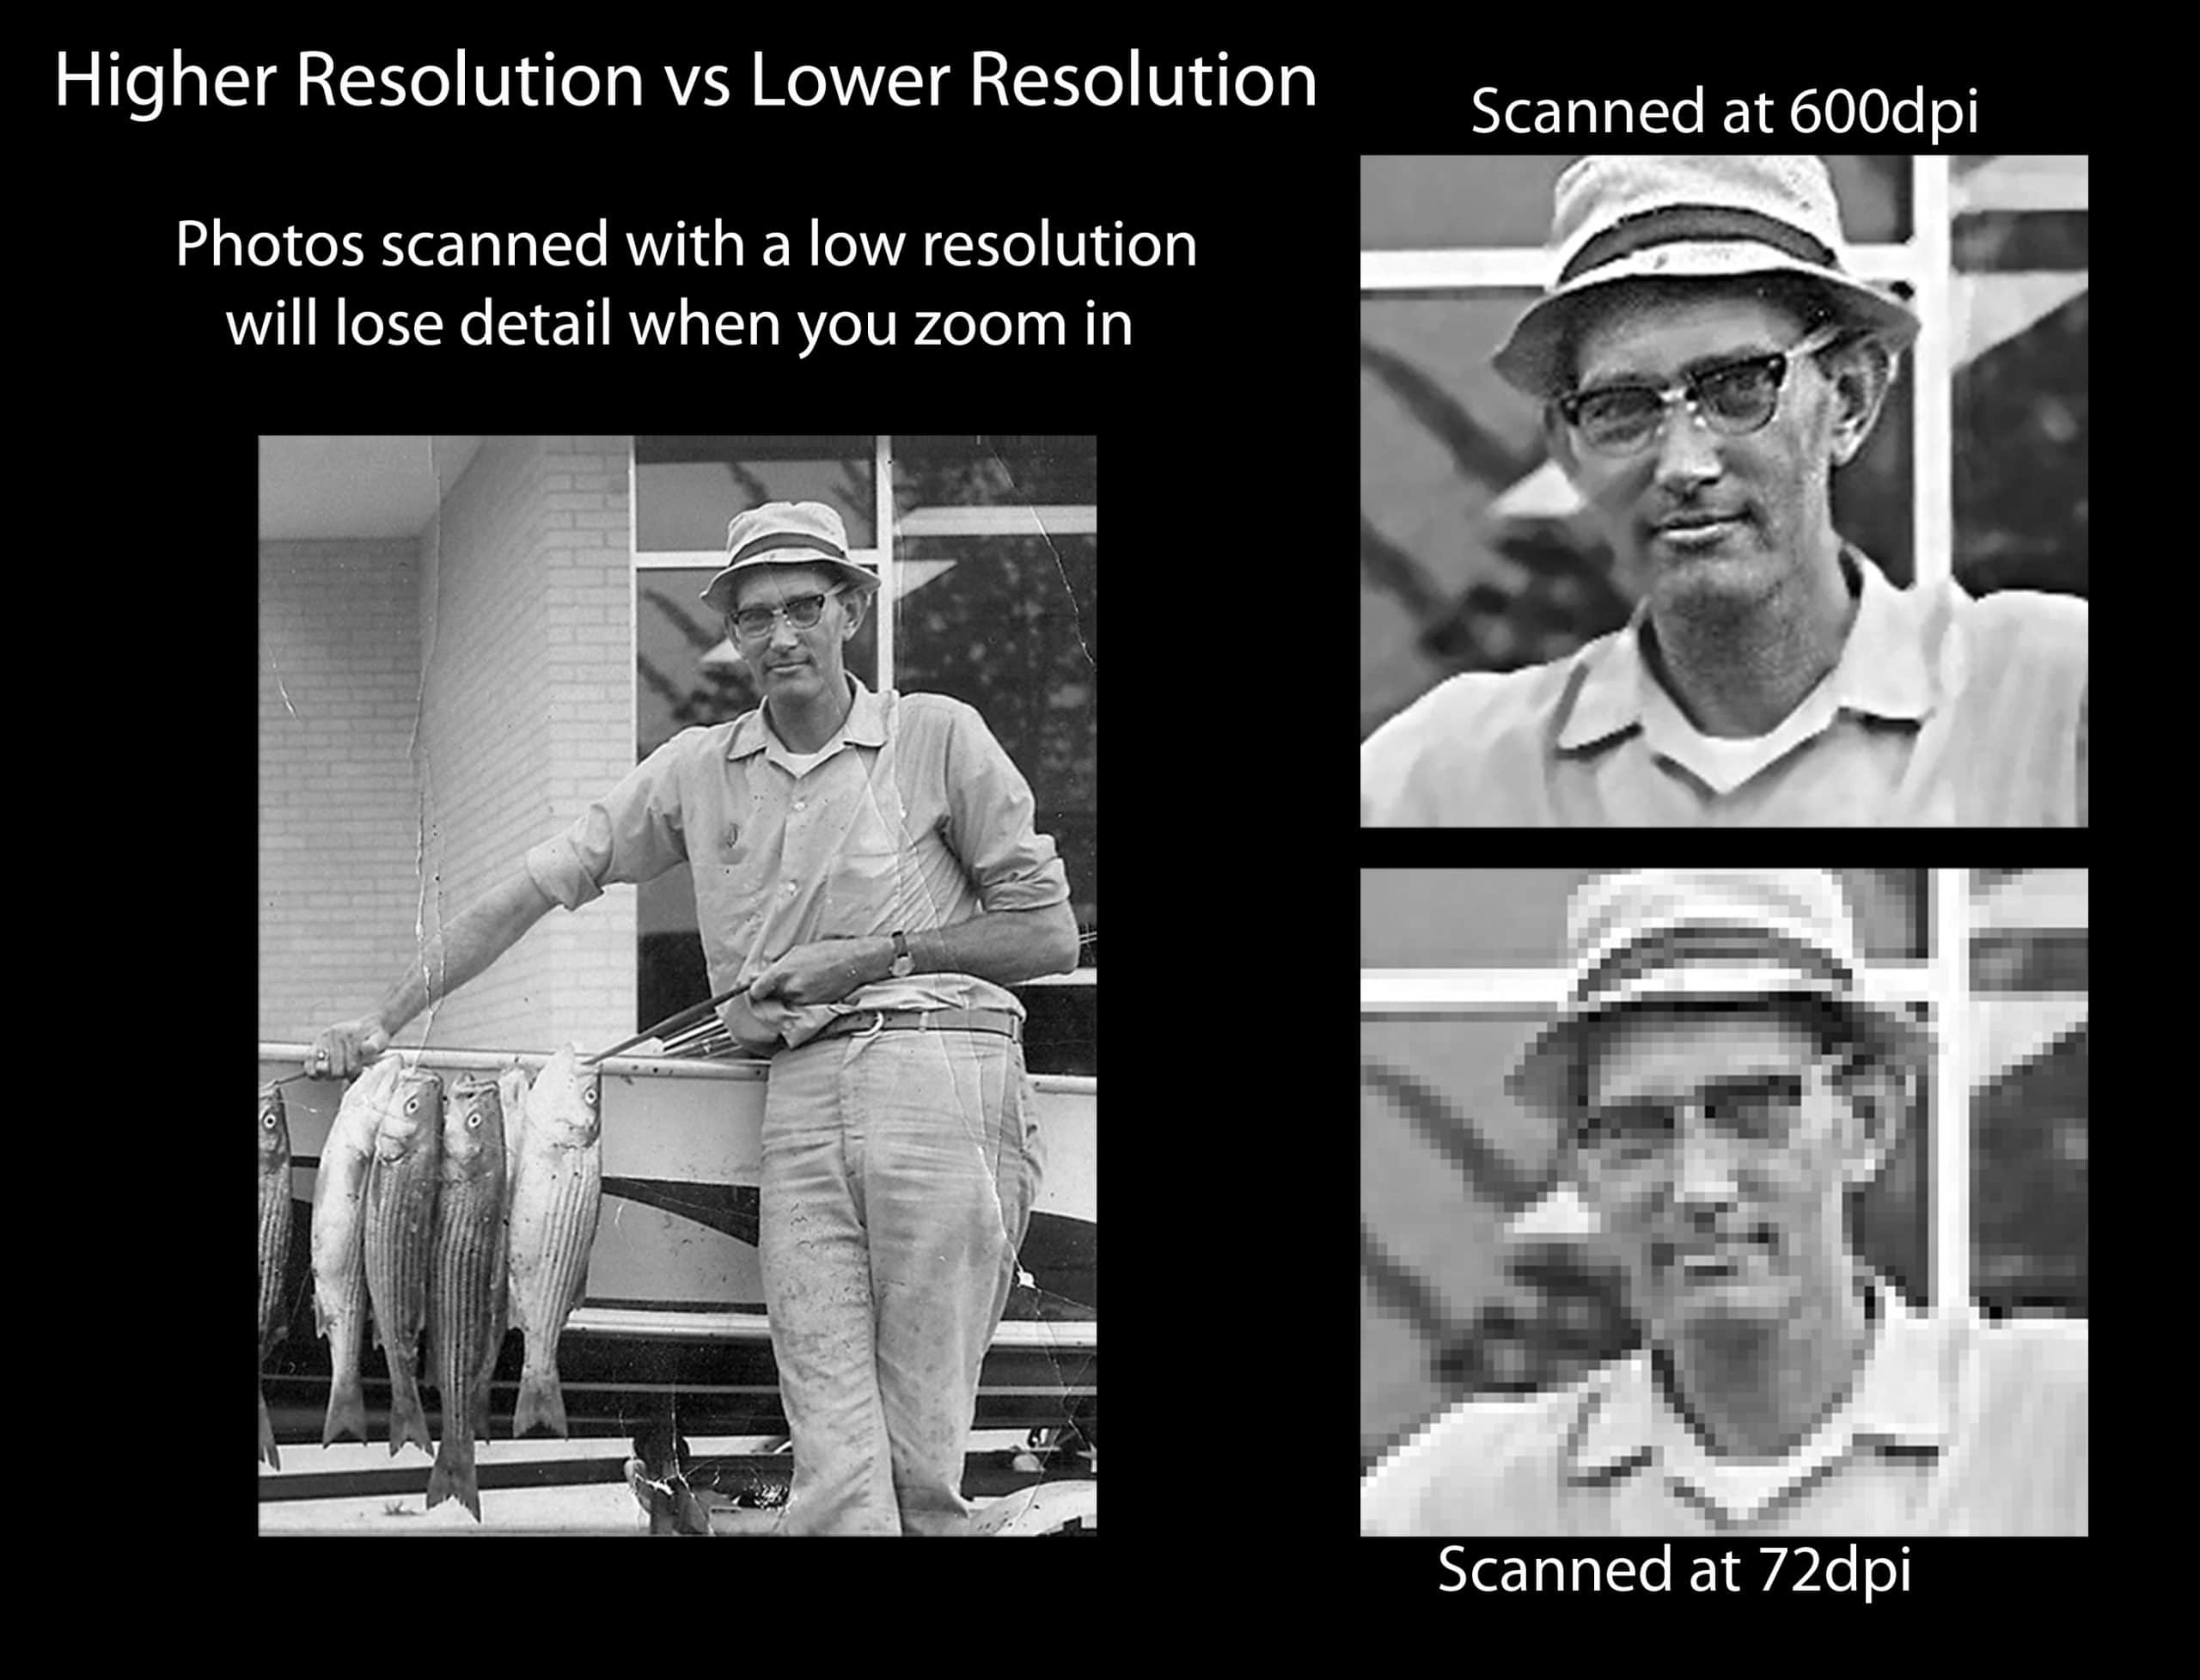 Scanning Resolution is Important